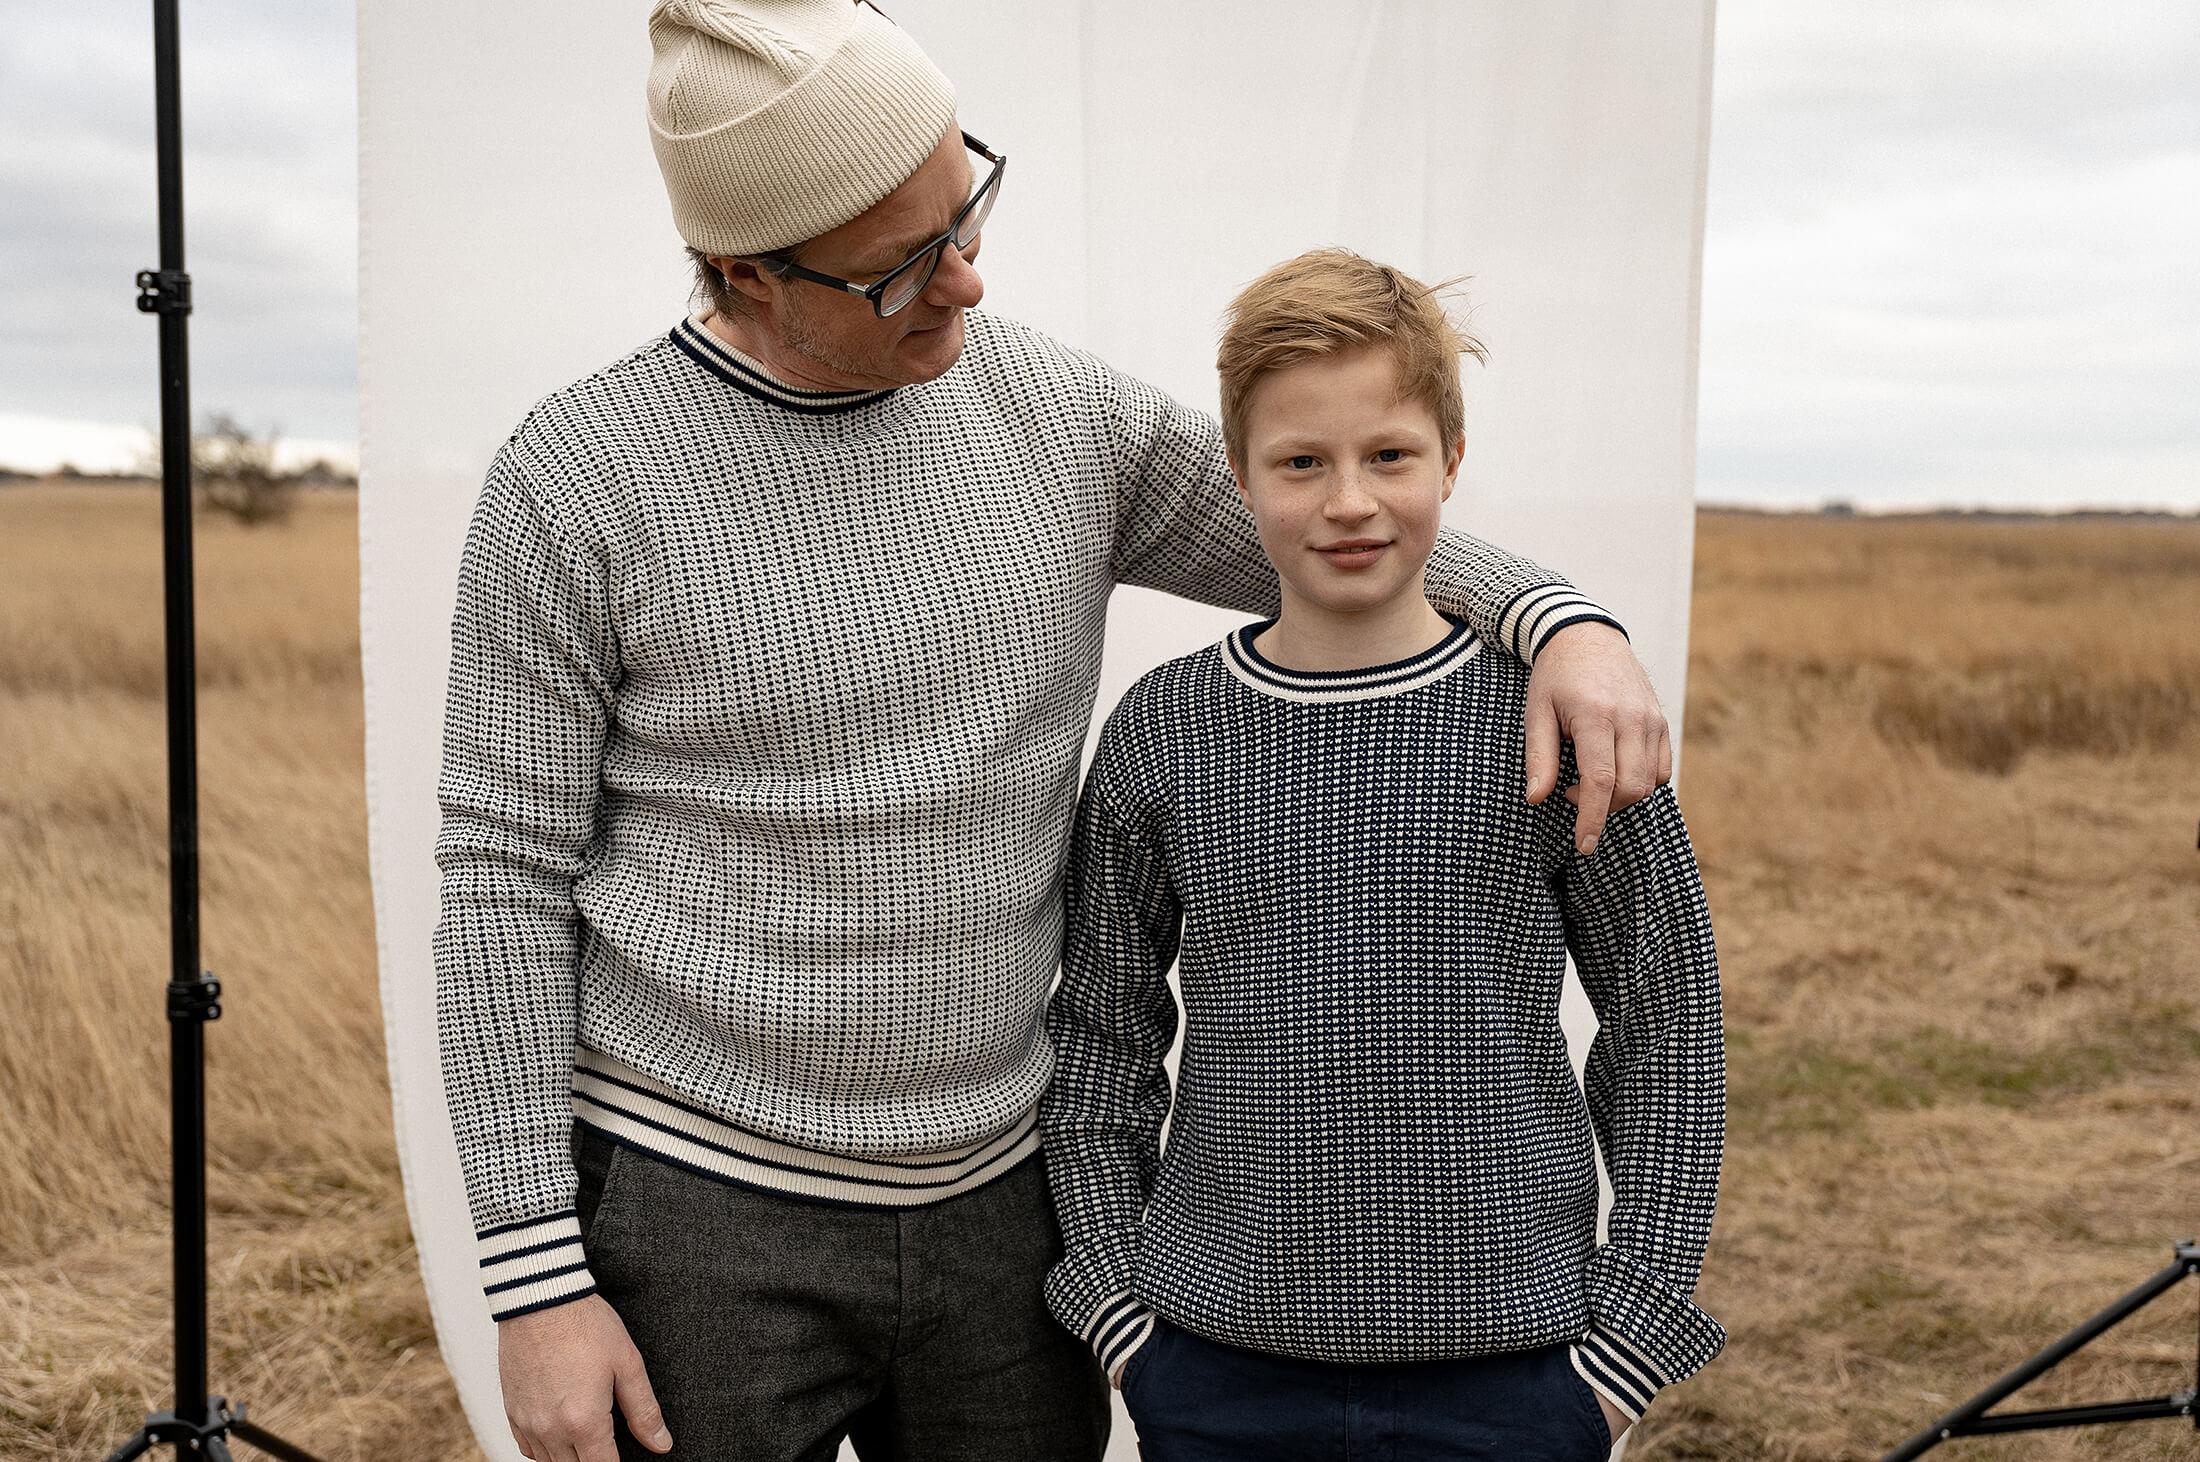 dad and son standing in a field wearing knitted sweaters. Soft light and soft colors.